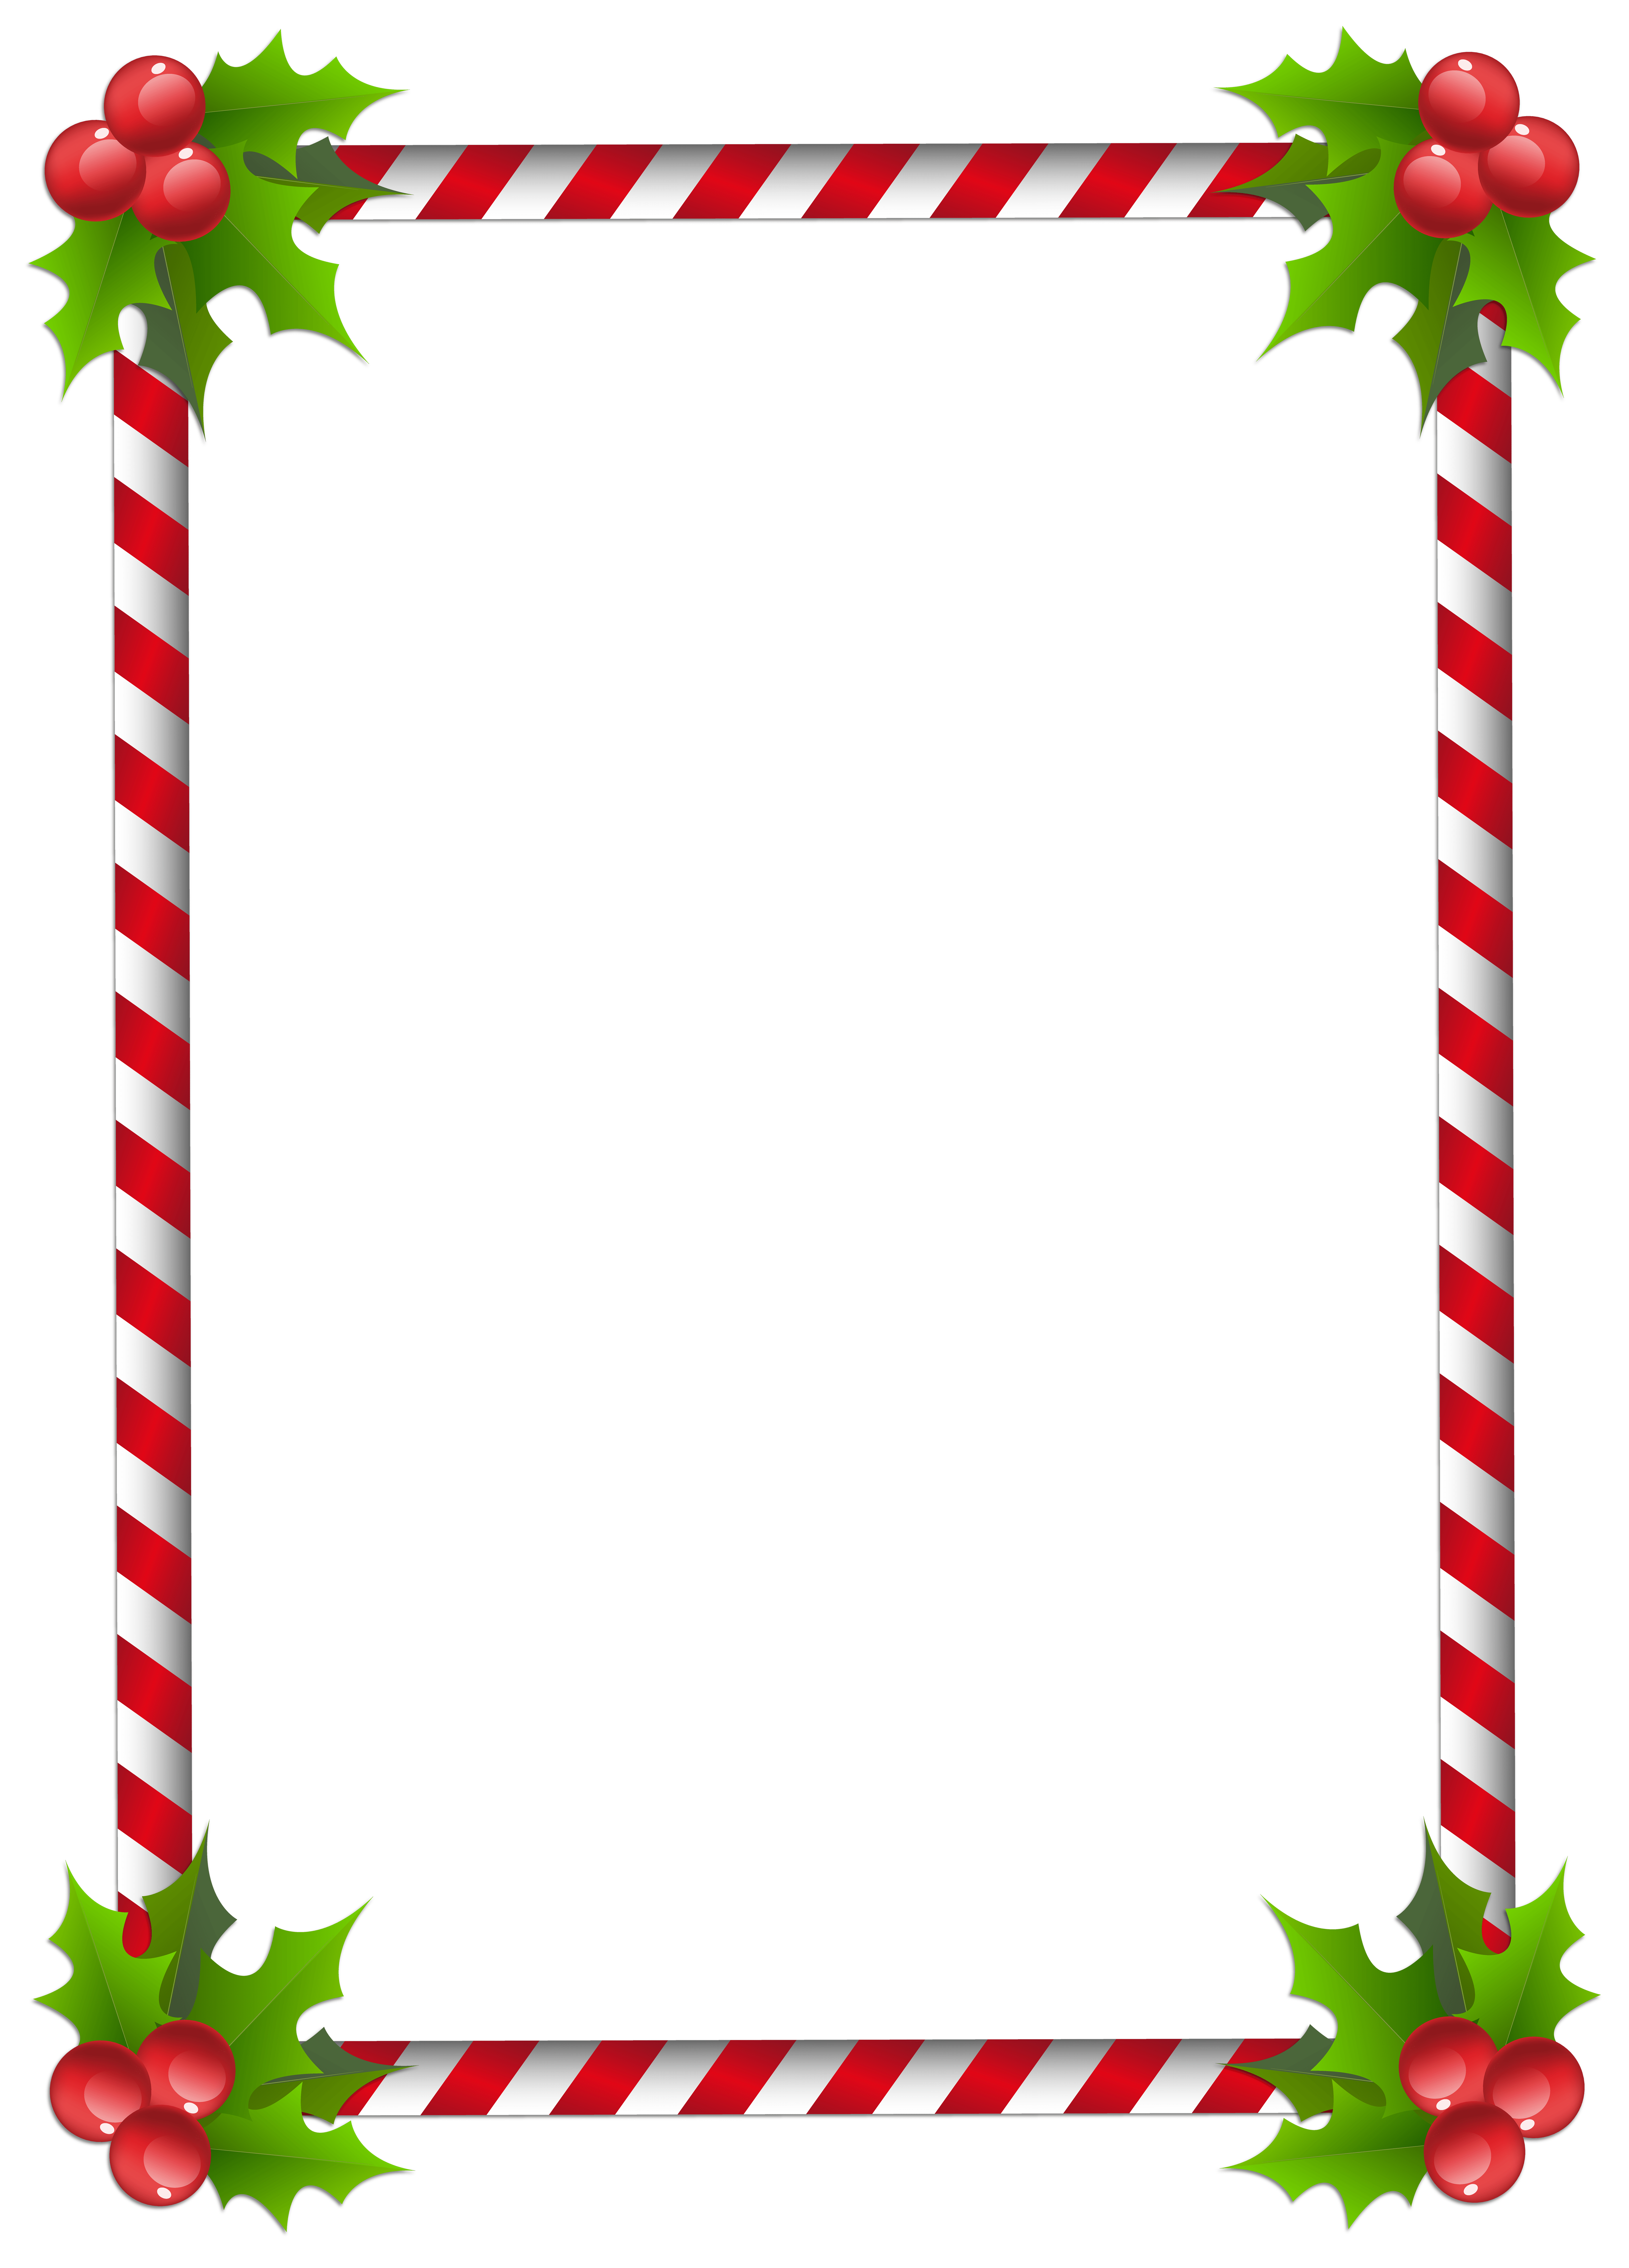 5746x8000 Christmas Border Transparent Merry Christmas And Happy New Year 2018